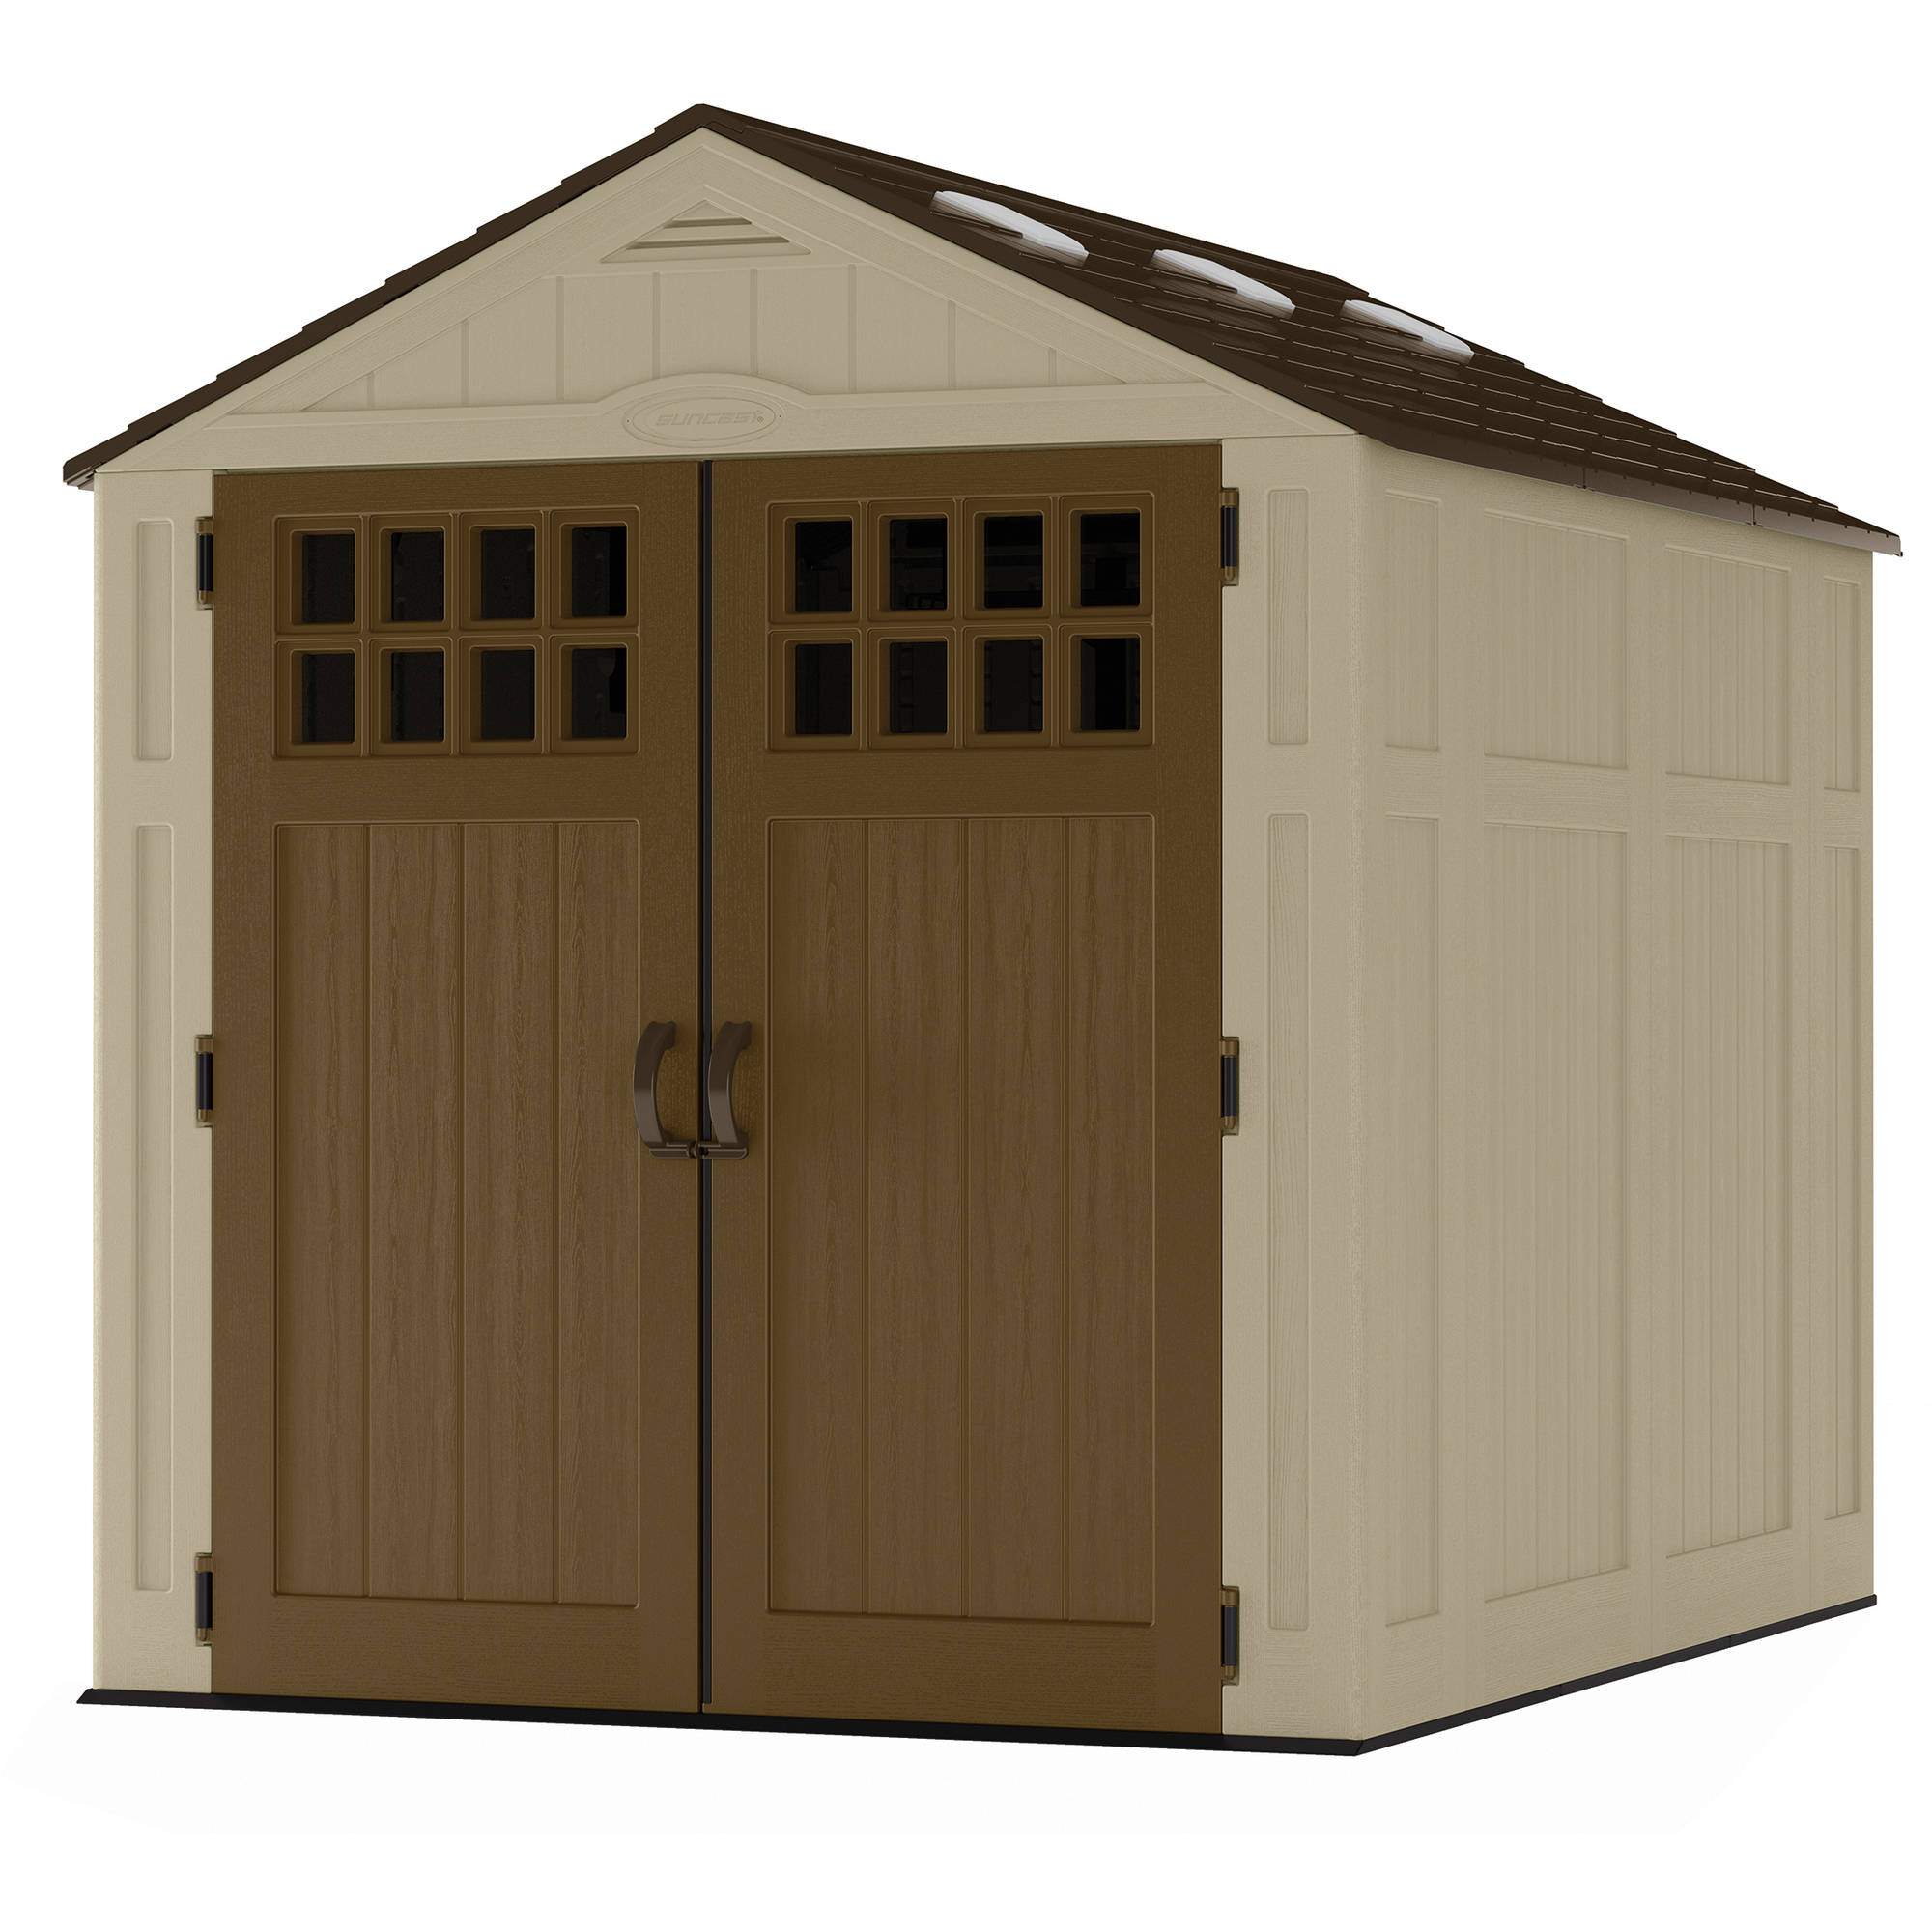 Suncast 6 x 8 Everett Storage Shed